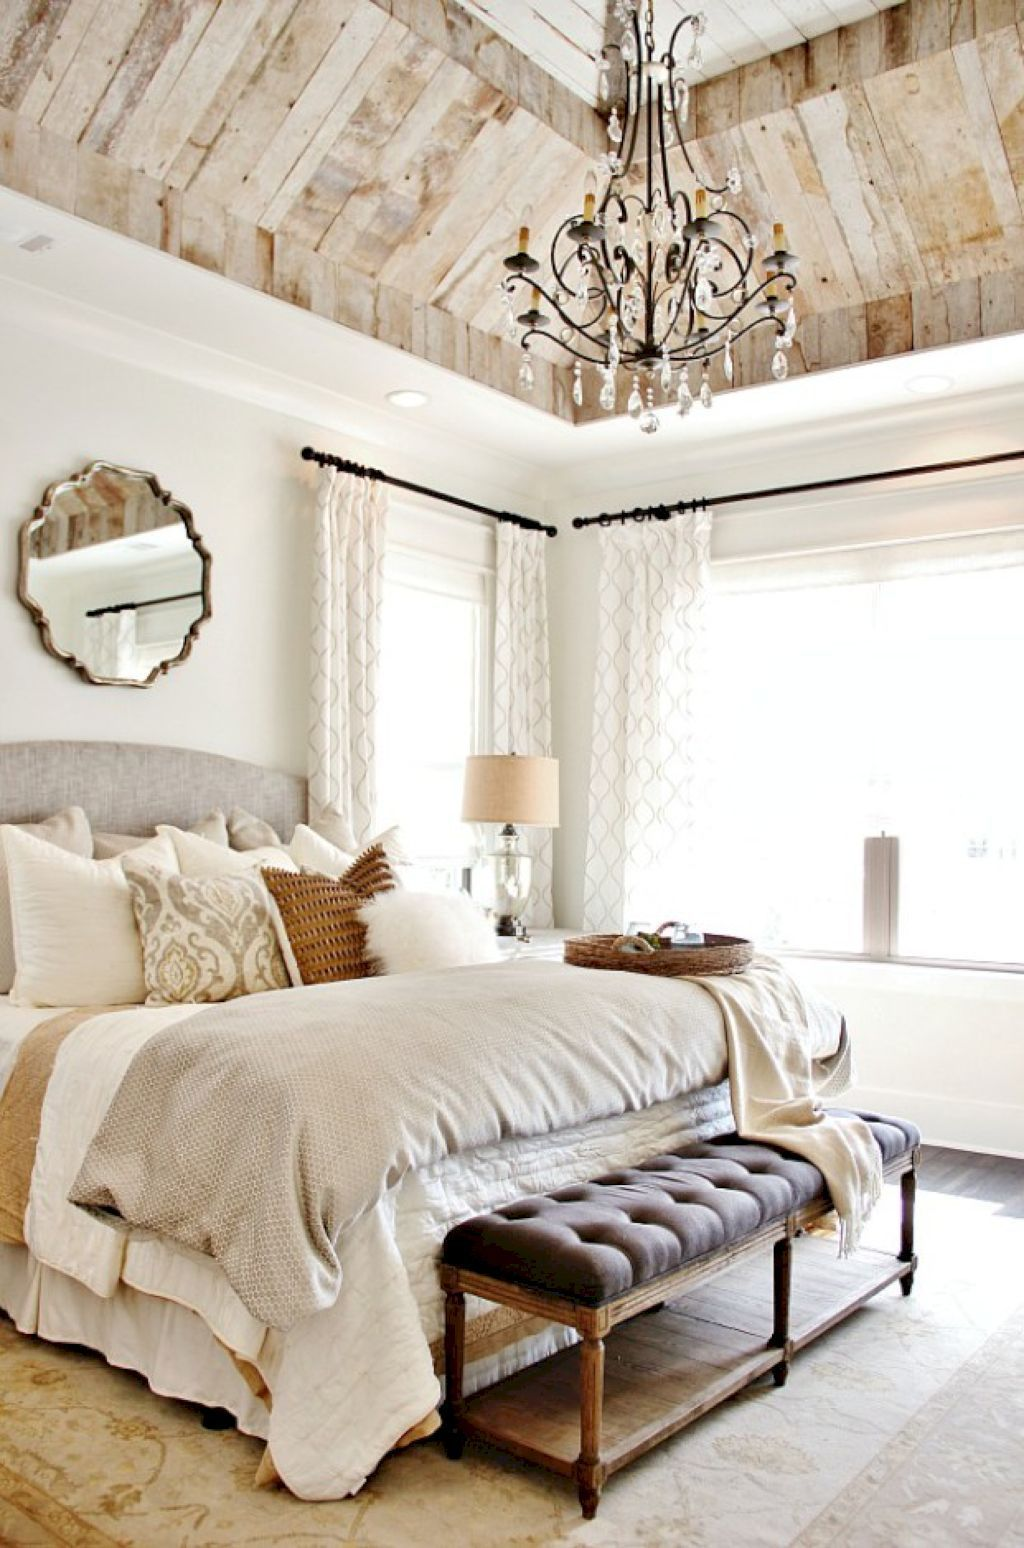 48 Master Bedroom Remodel Ideas on a Budget | Home Decor ...